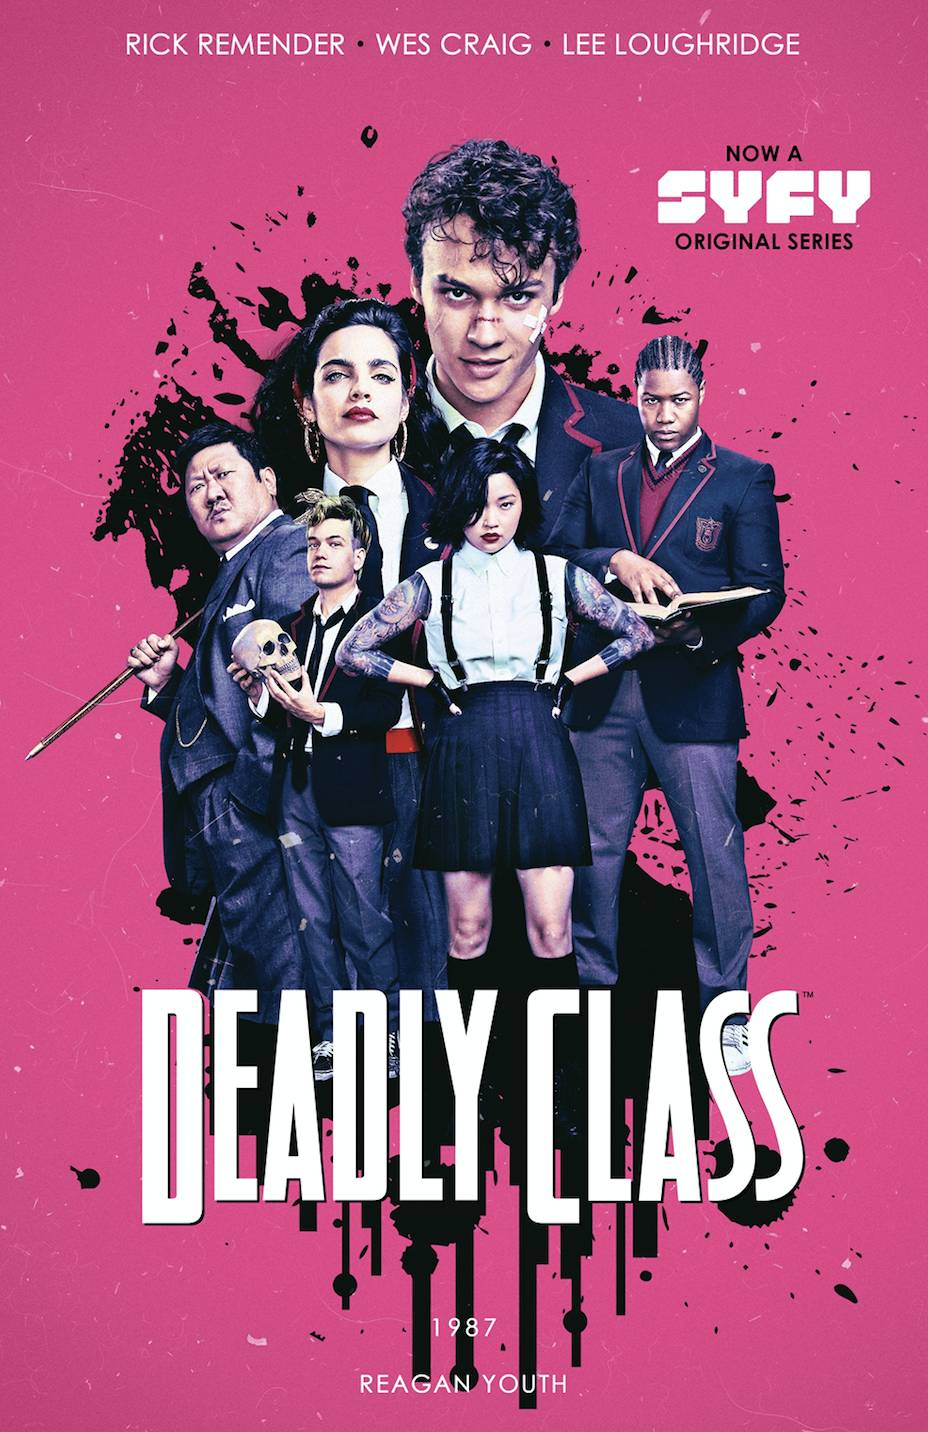 DEADLY CLASS TP VOL 01 MEDIA TIE-IN ED (SEP180084) (MR)